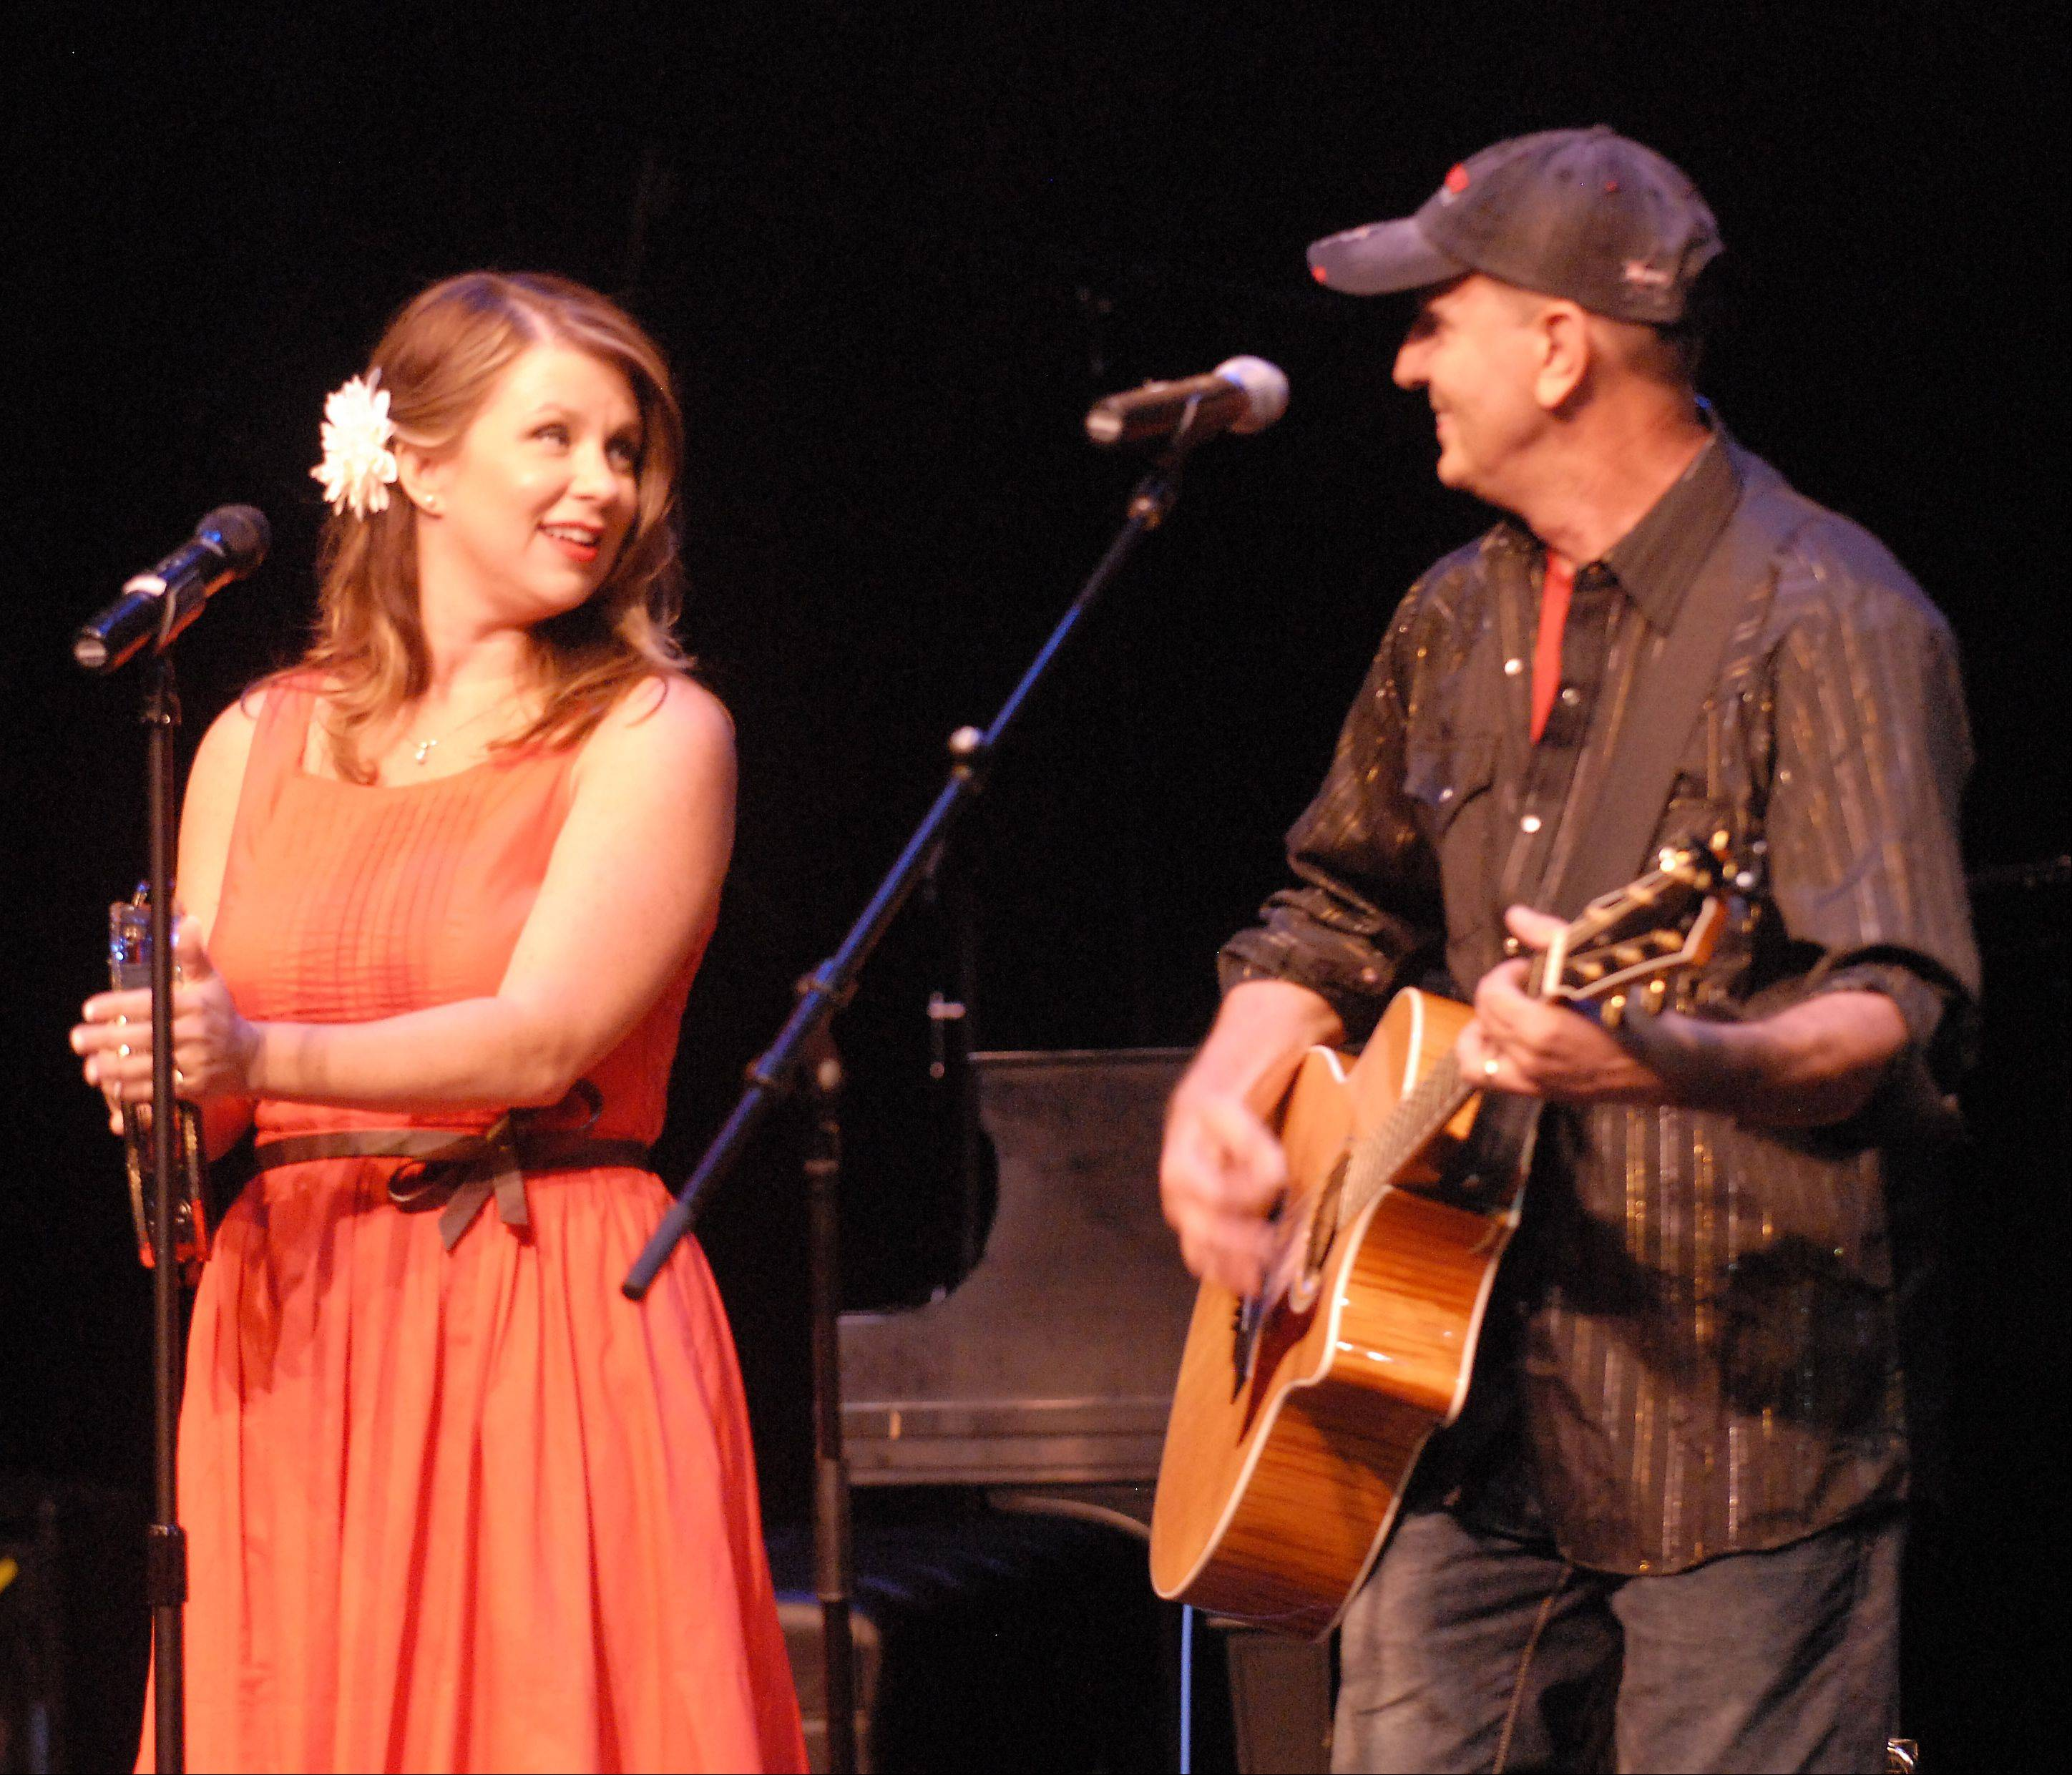 Camille Eiseman and Terry Tank, billed as Faith and Whiskey, from Crystal Lake, perform for judges and an audience as one of the top 10 acts in the Suburban Chicago's Got Talent competition Sunday evening at the Metropolis Performing Arts Centre in Arlington Heights.